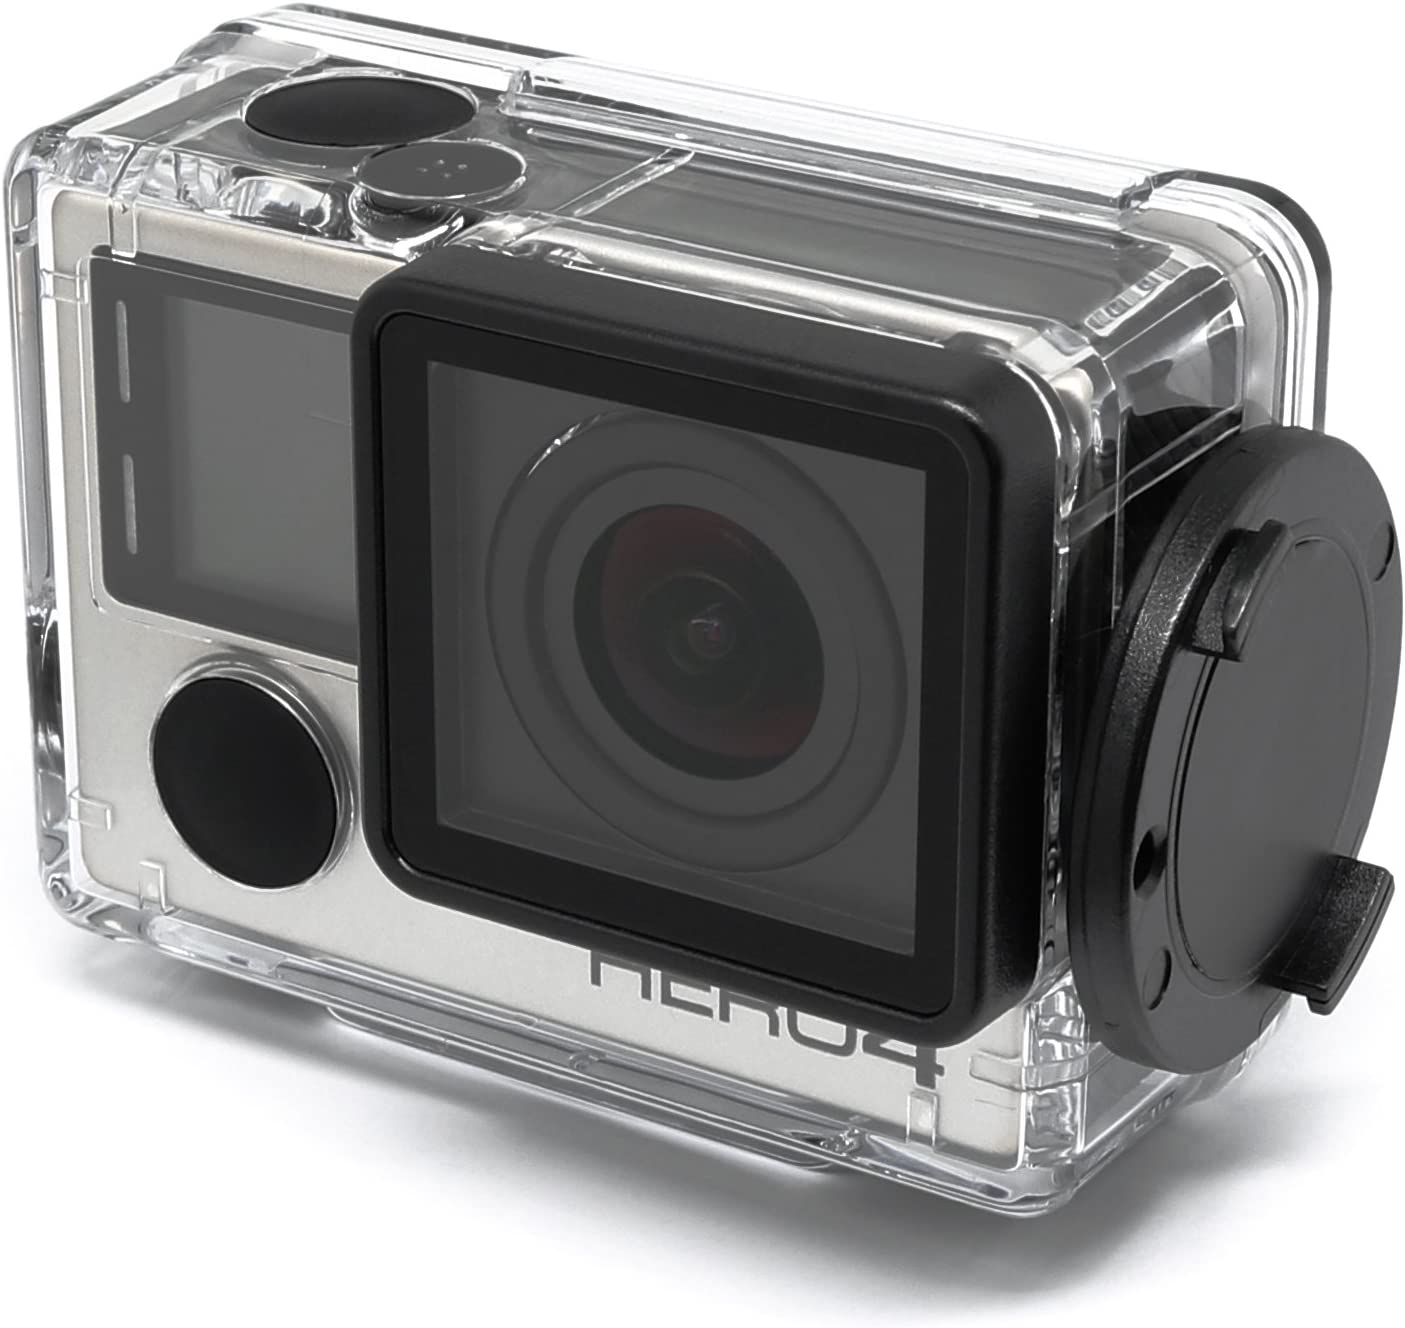 4 6 and Session Cameras RM-S1 Black 5 Removu S1 Rainproof Wearable ...